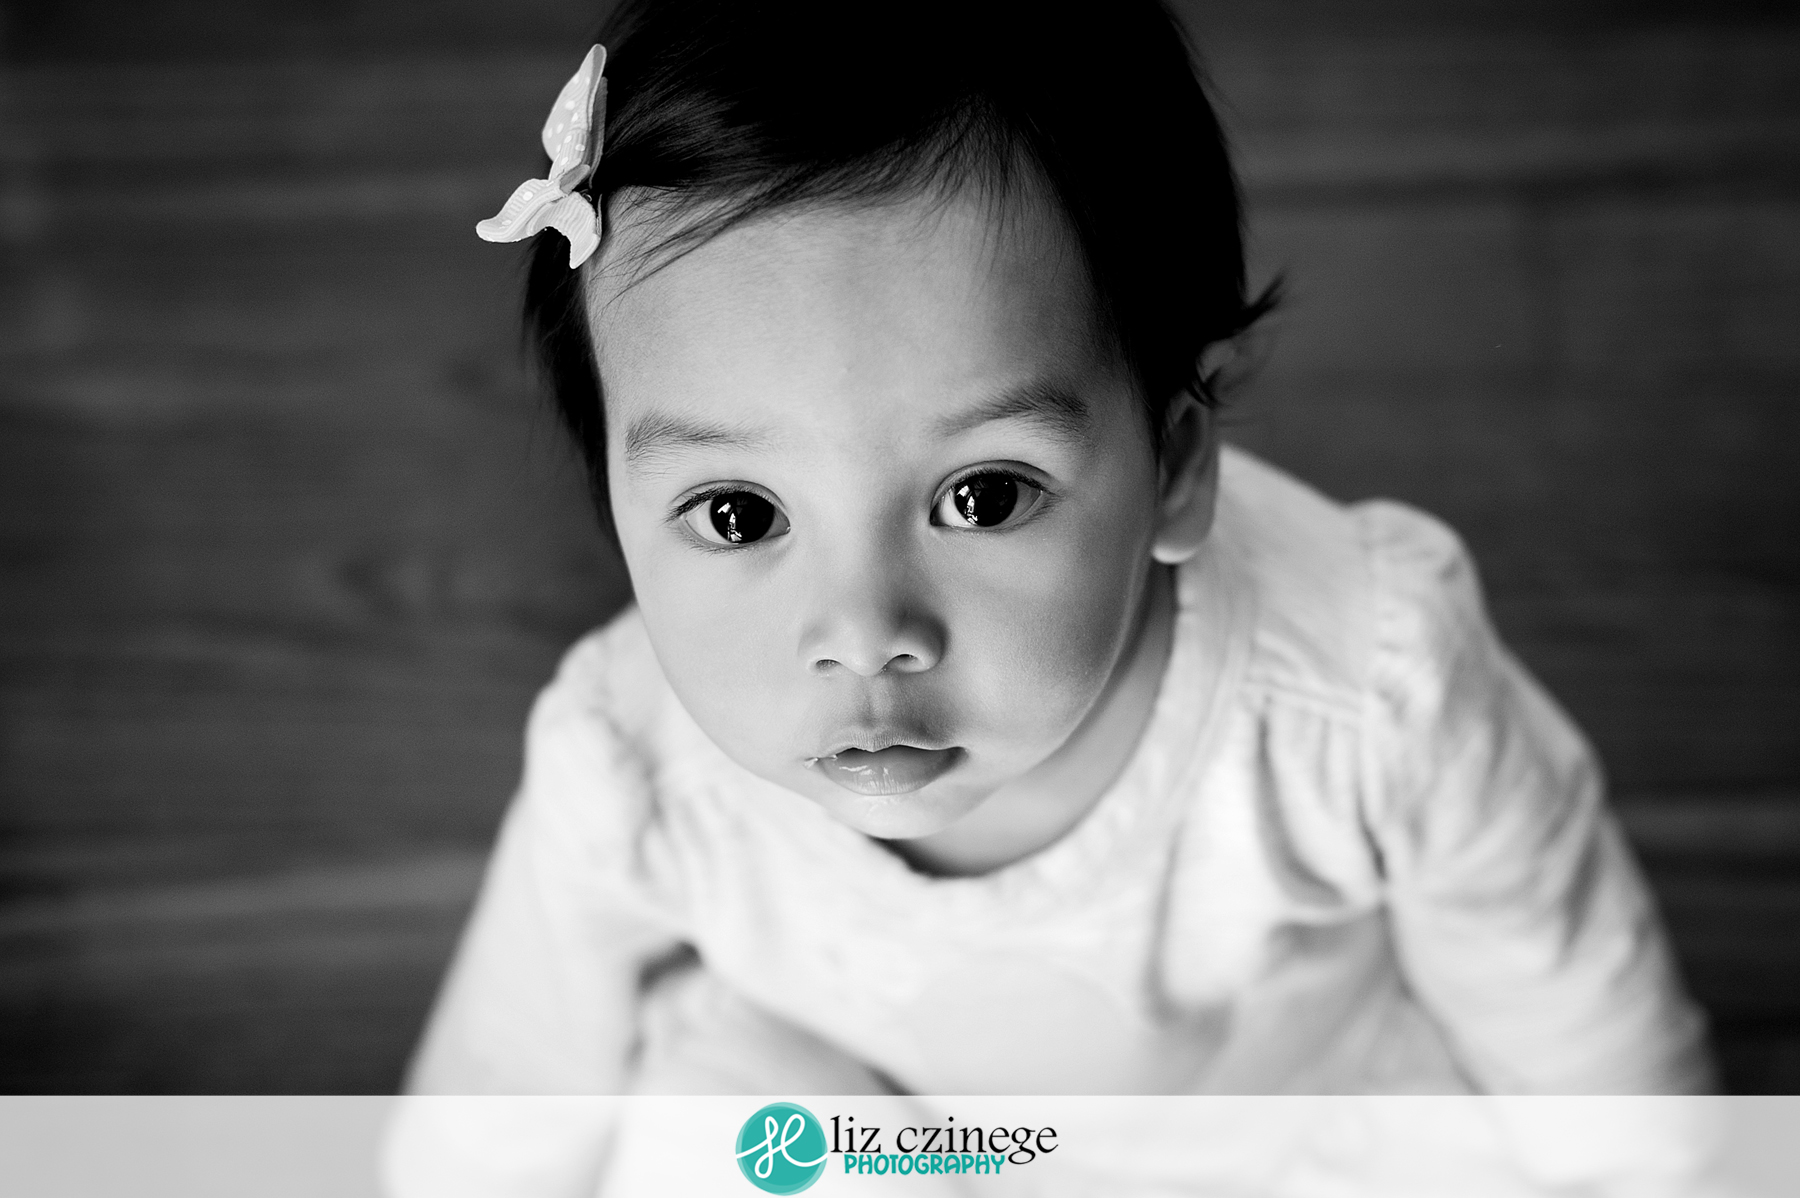 liz_czinege_photography_child_newborn04